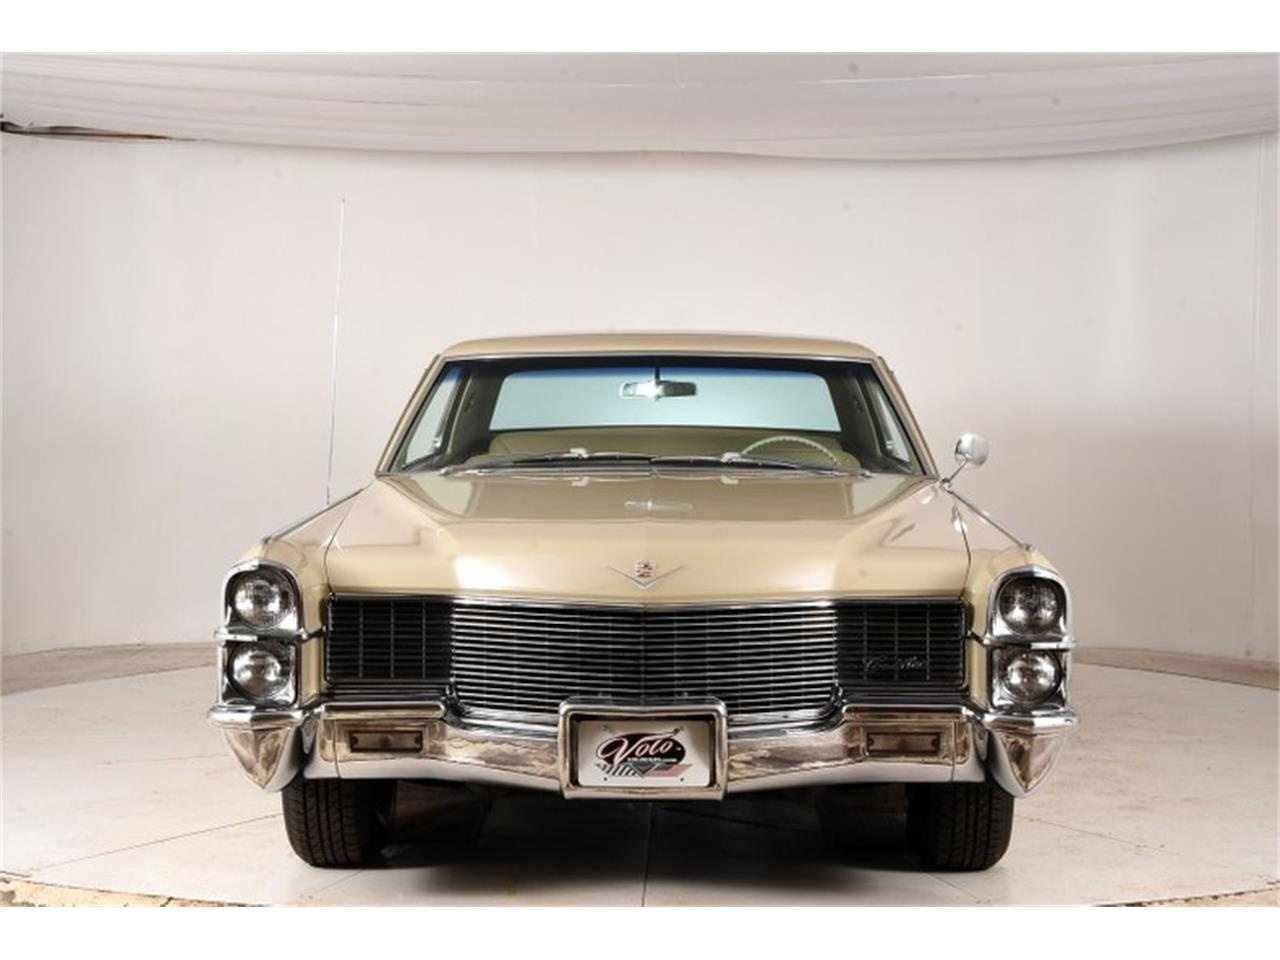 Large Picture of Classic '65 Cadillac Calais located in Illinois - $18,998.00 - ORZJ